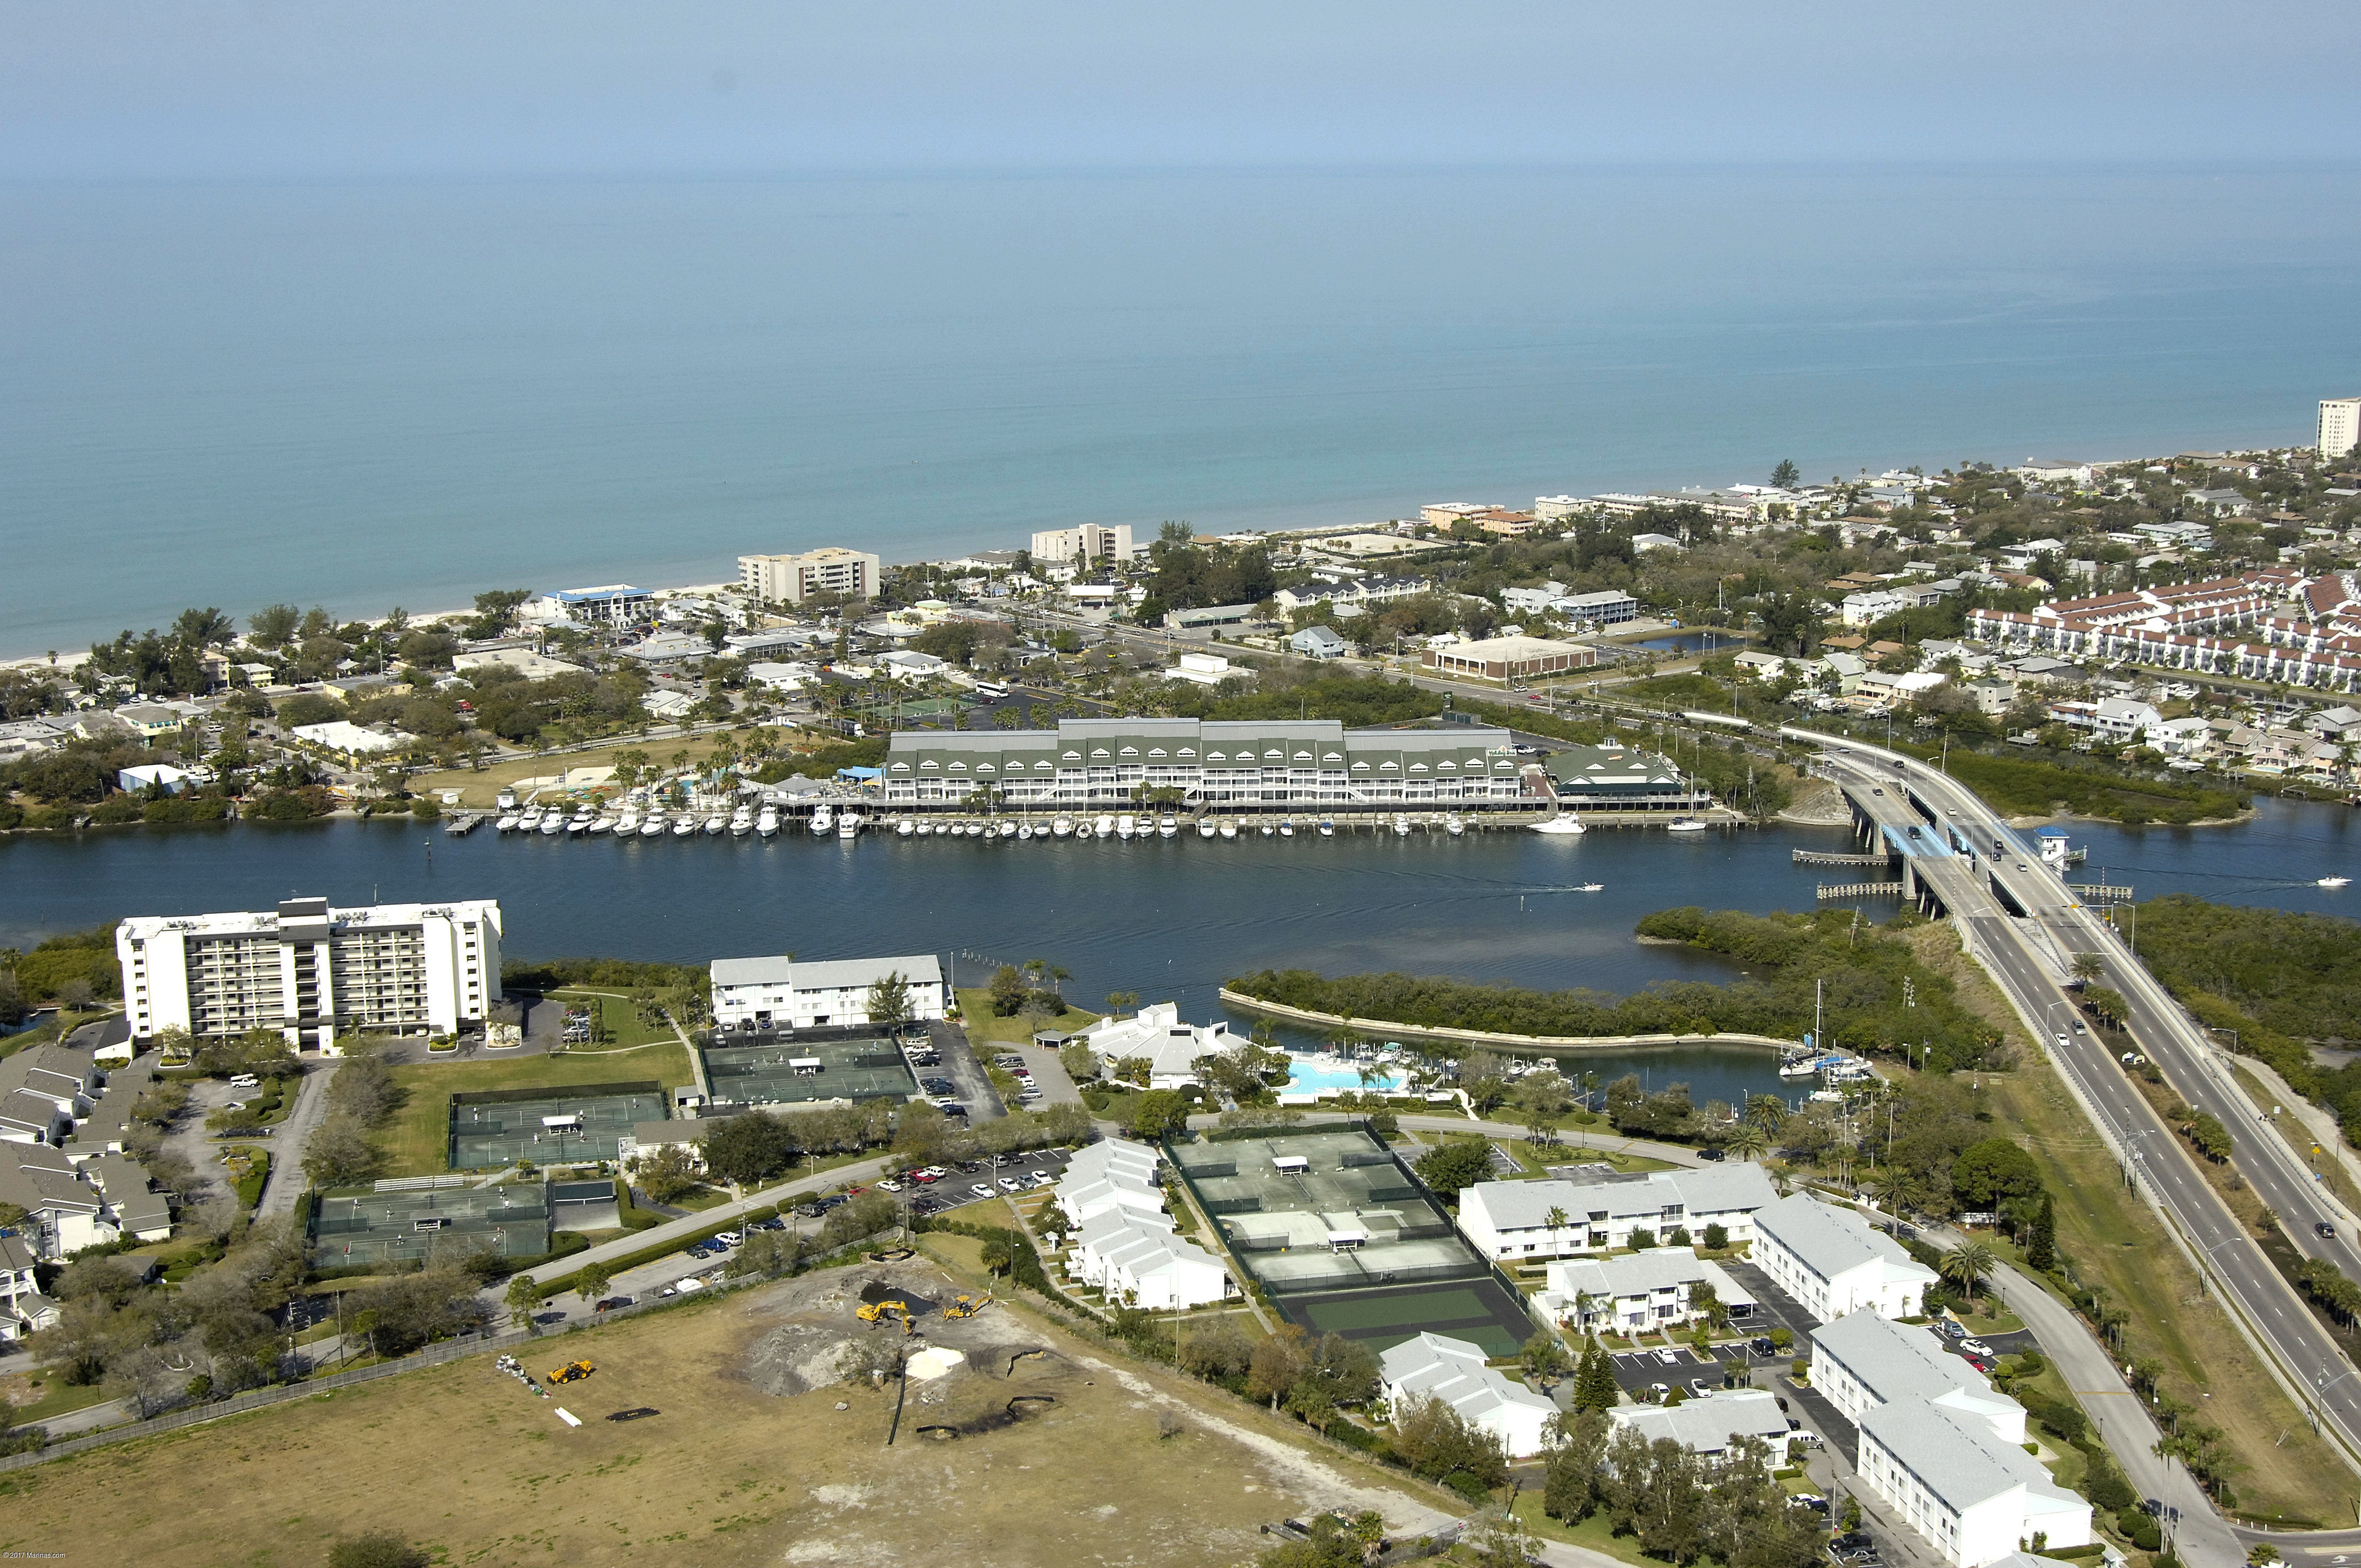 Holiday Inn Harbourside Clearwater In Indian Rocks Beach Fl United States Marina Reviews